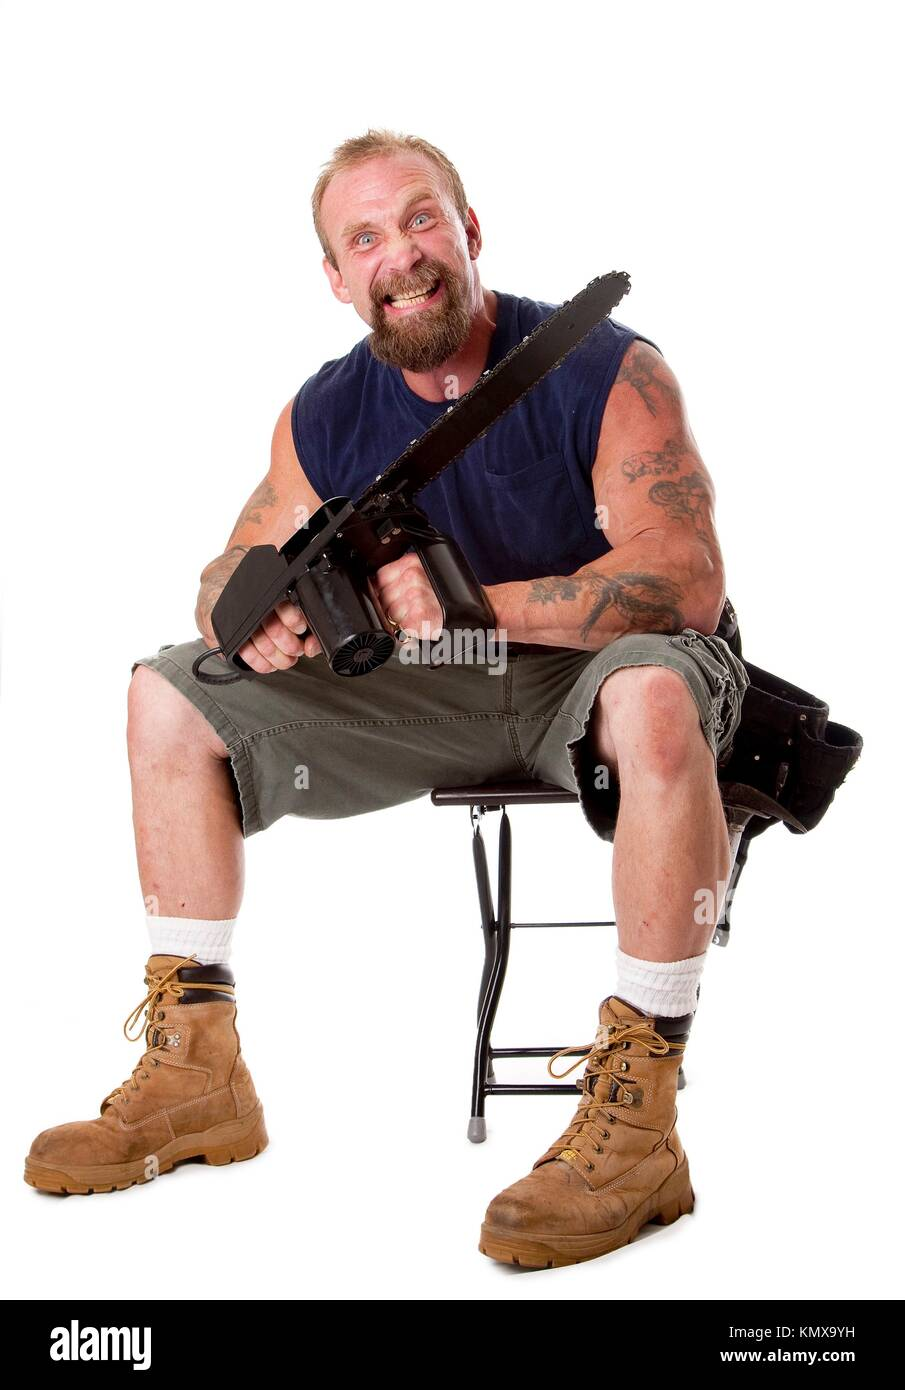 Crazy Caucasian man with tattoos and chainsaw sitting on stool with strong facial expression, isolated Stock Photo